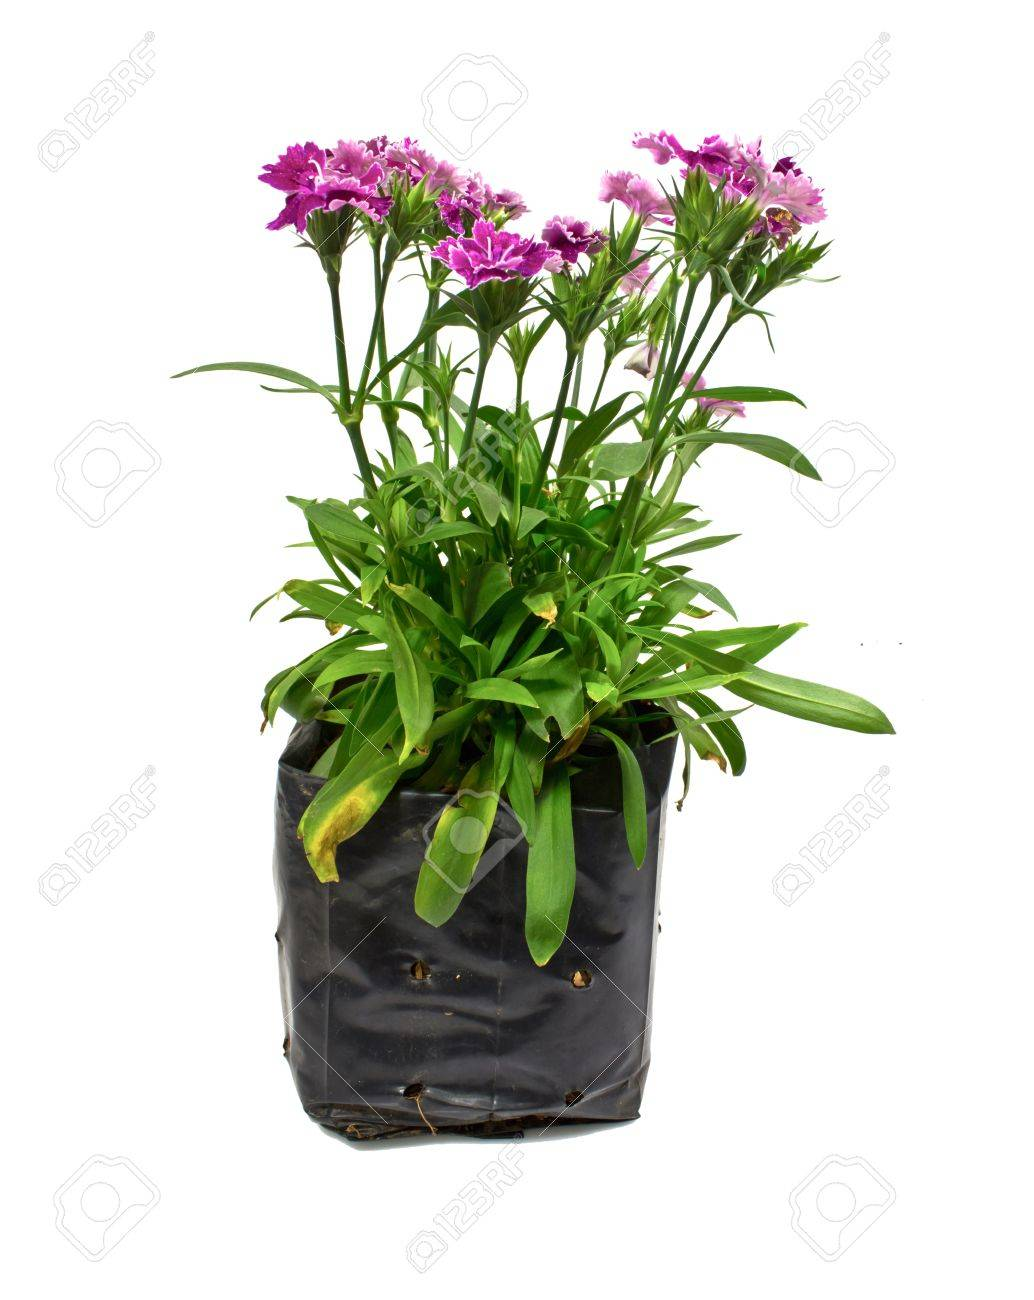 Nursery bags with dianthus flowers  isolated on white background Stock Photo - 17241006